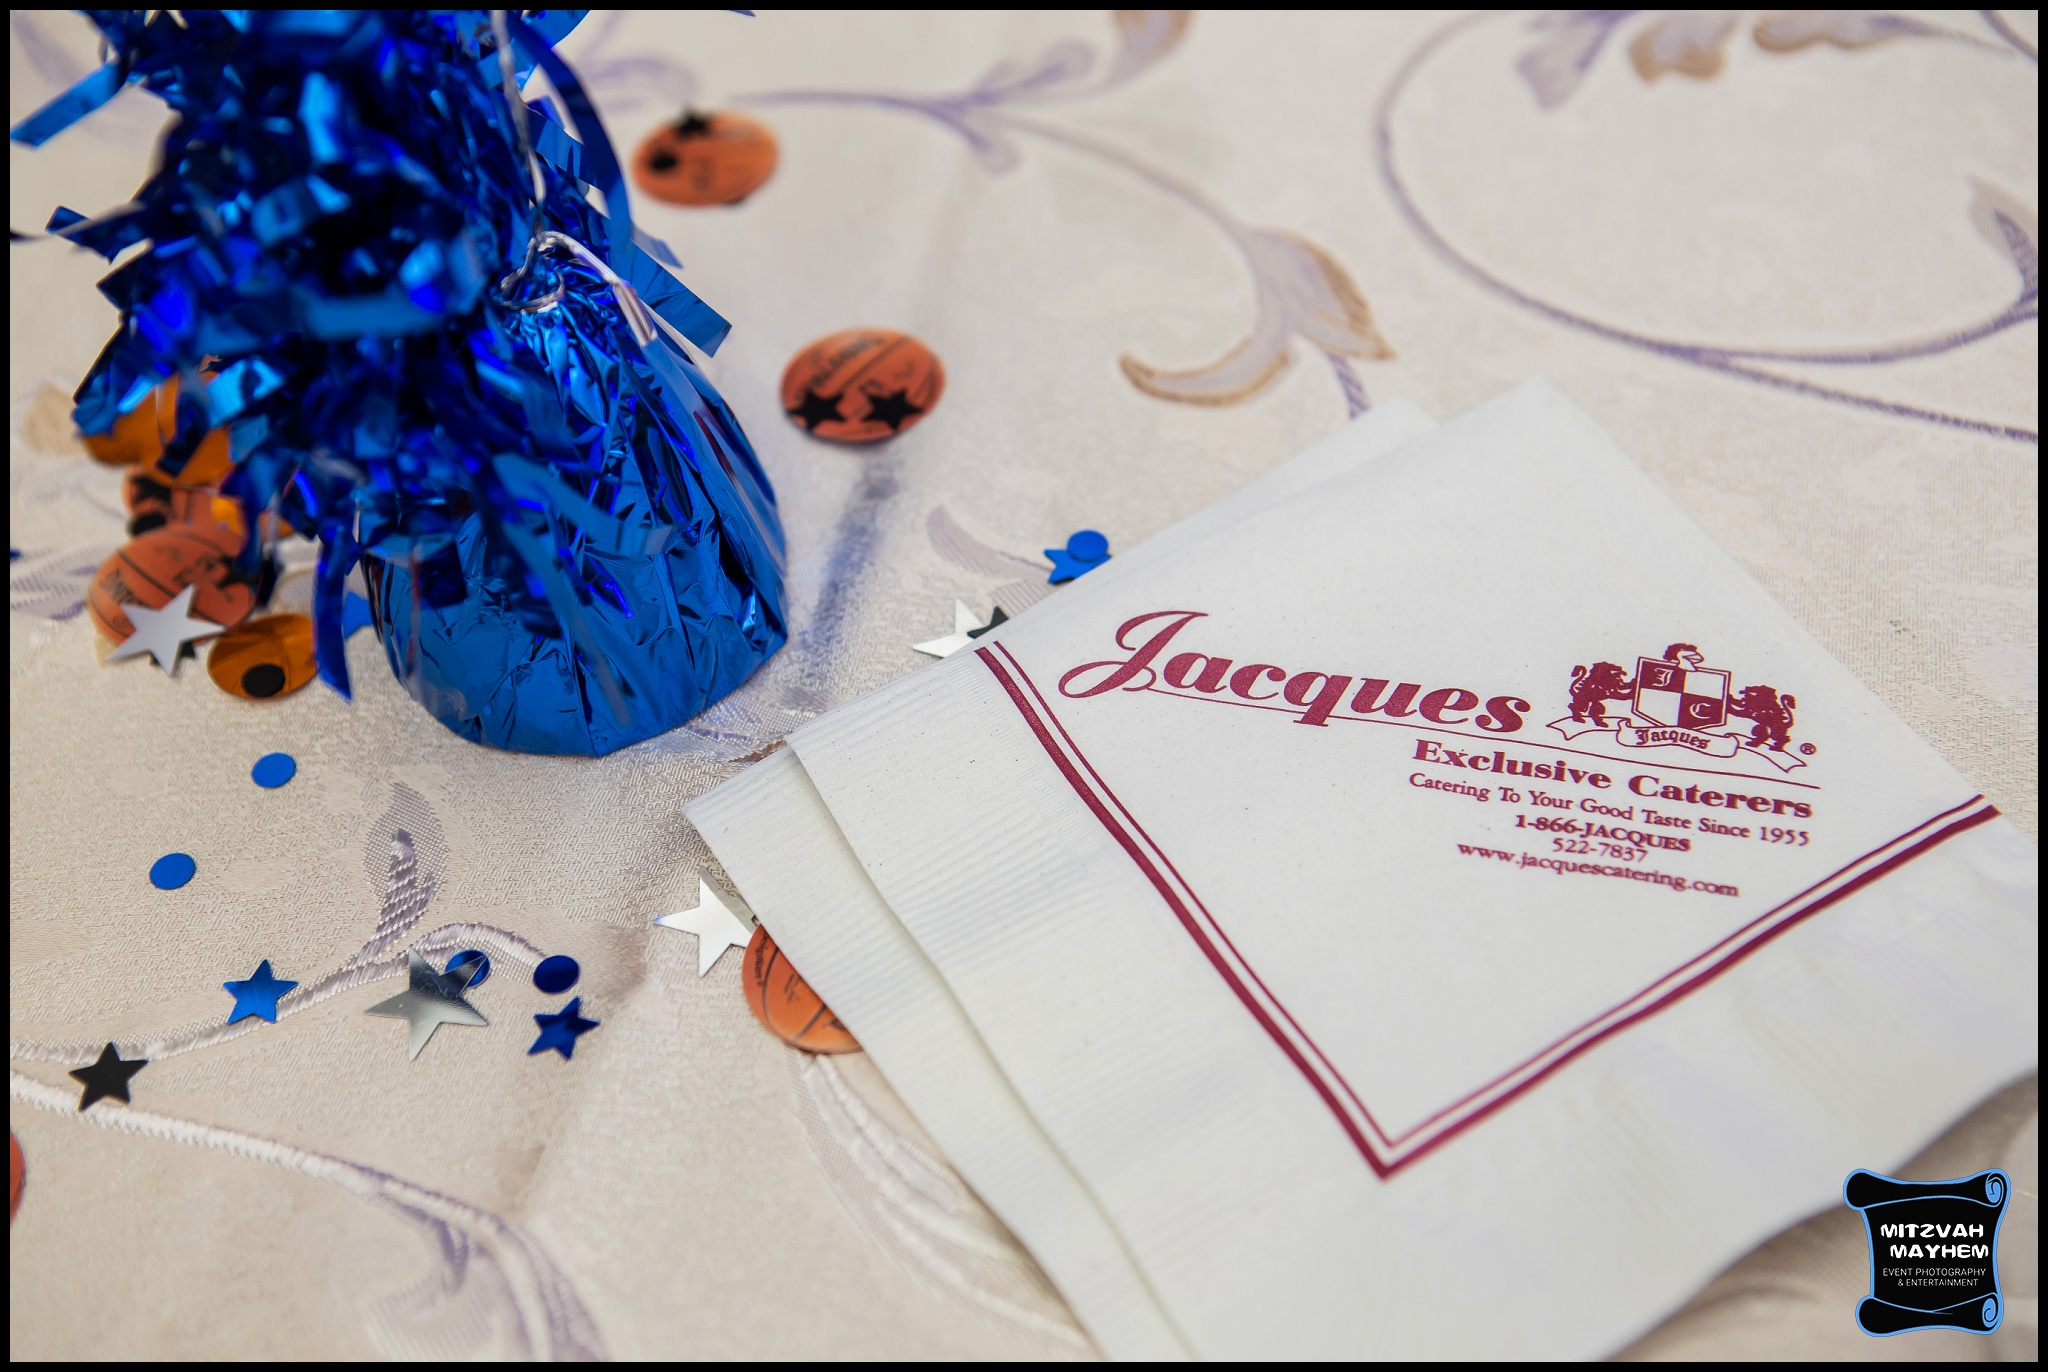 nj-mitzvah-photographer-jacques-caterers-27.JPG